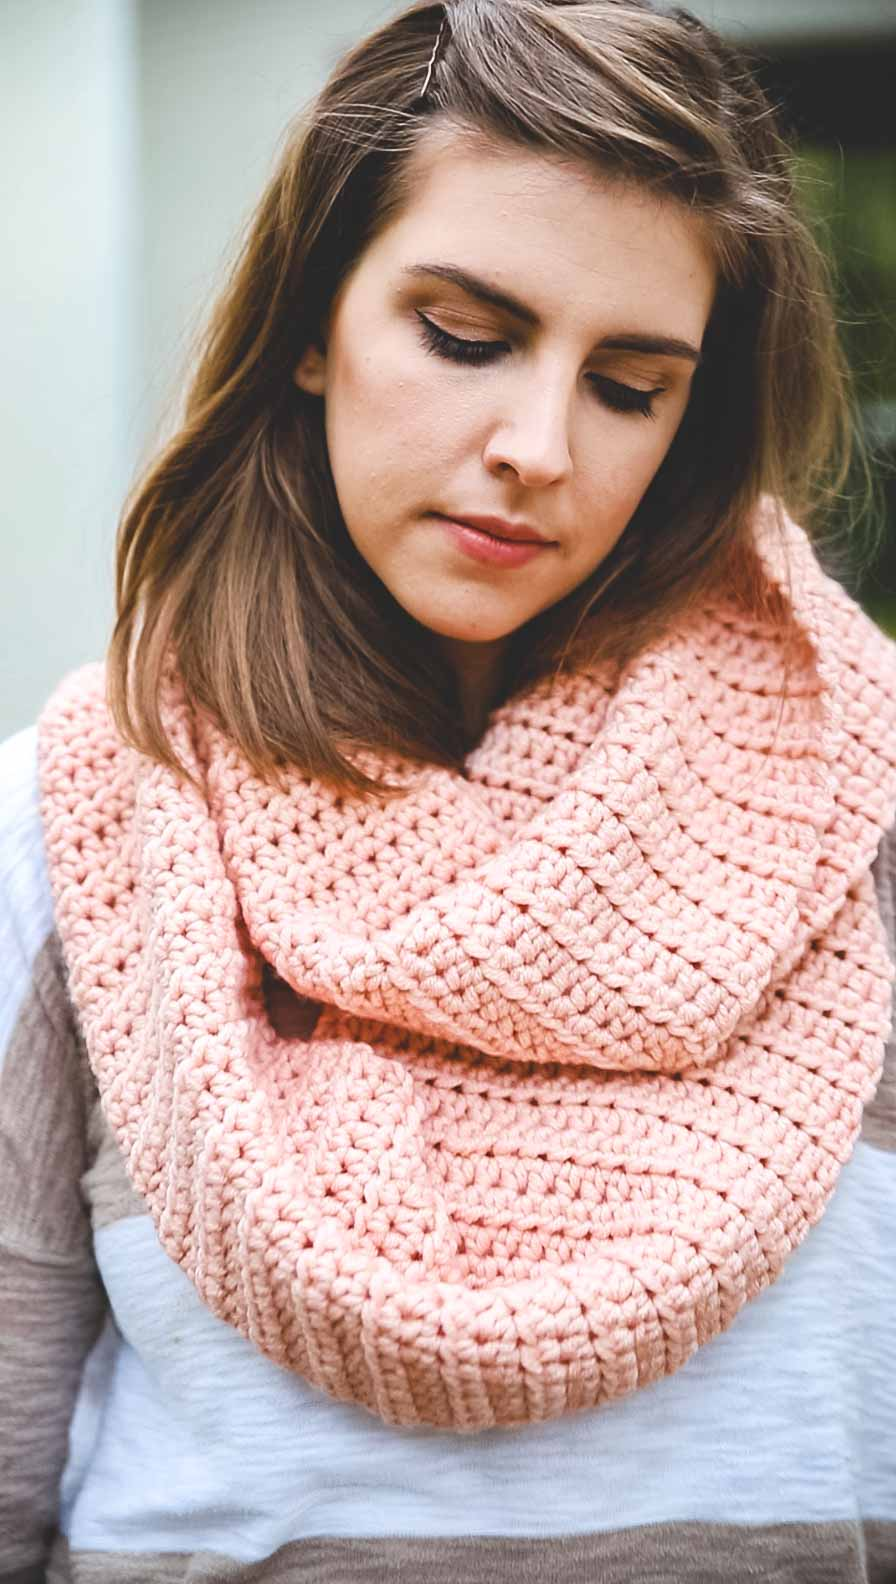 How To Crochet A Scarf No Experience Needed Sewrella